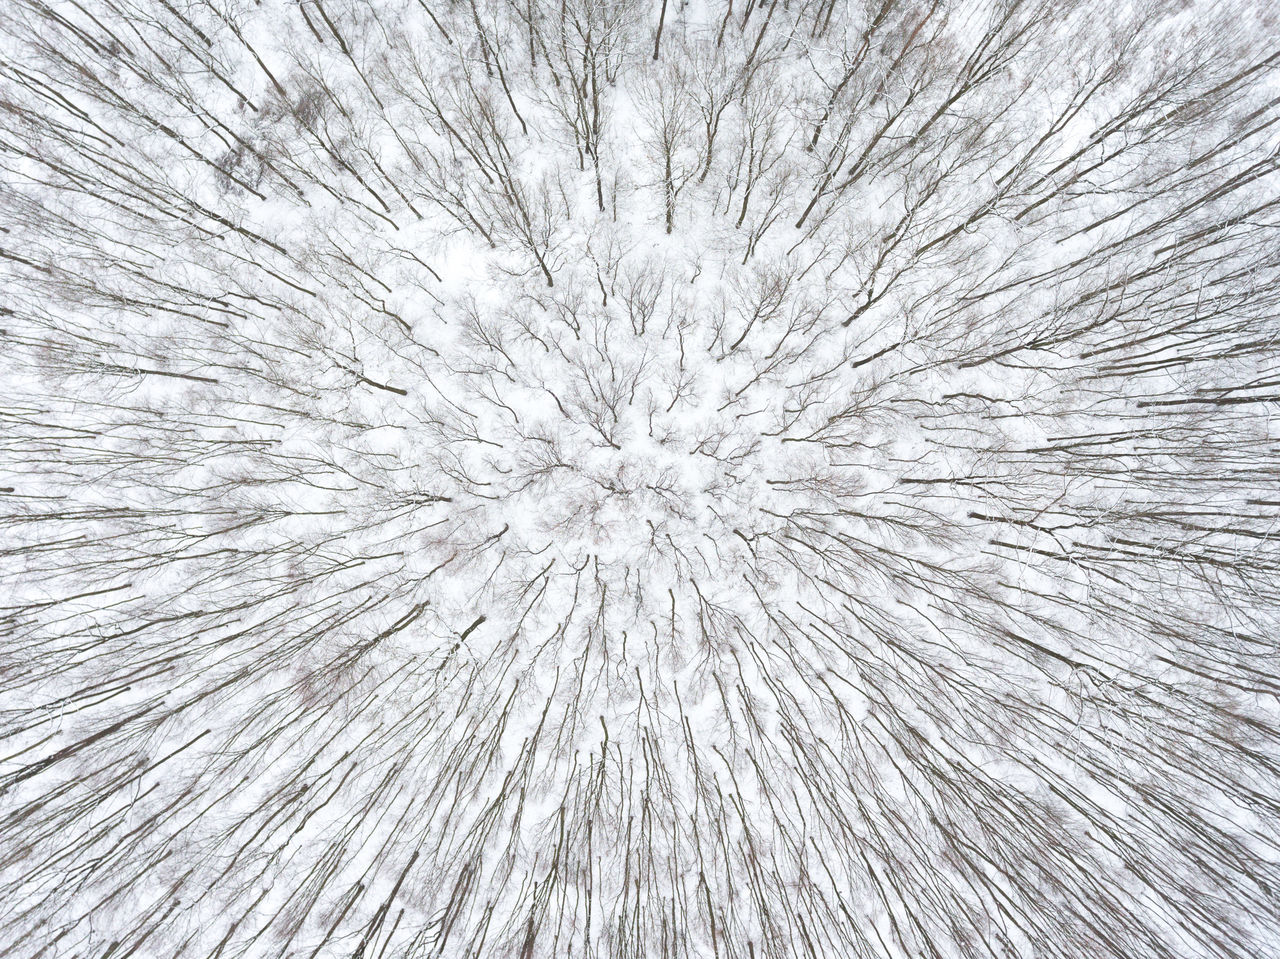 Top down view on a forest at winter day with naked trees forming radial patterns aerial view altitude backgrounds beauty in Nature cold day down Farm Freshness full frame Growth height Ice Nature no people outdoors park radial snow Textured Flying High